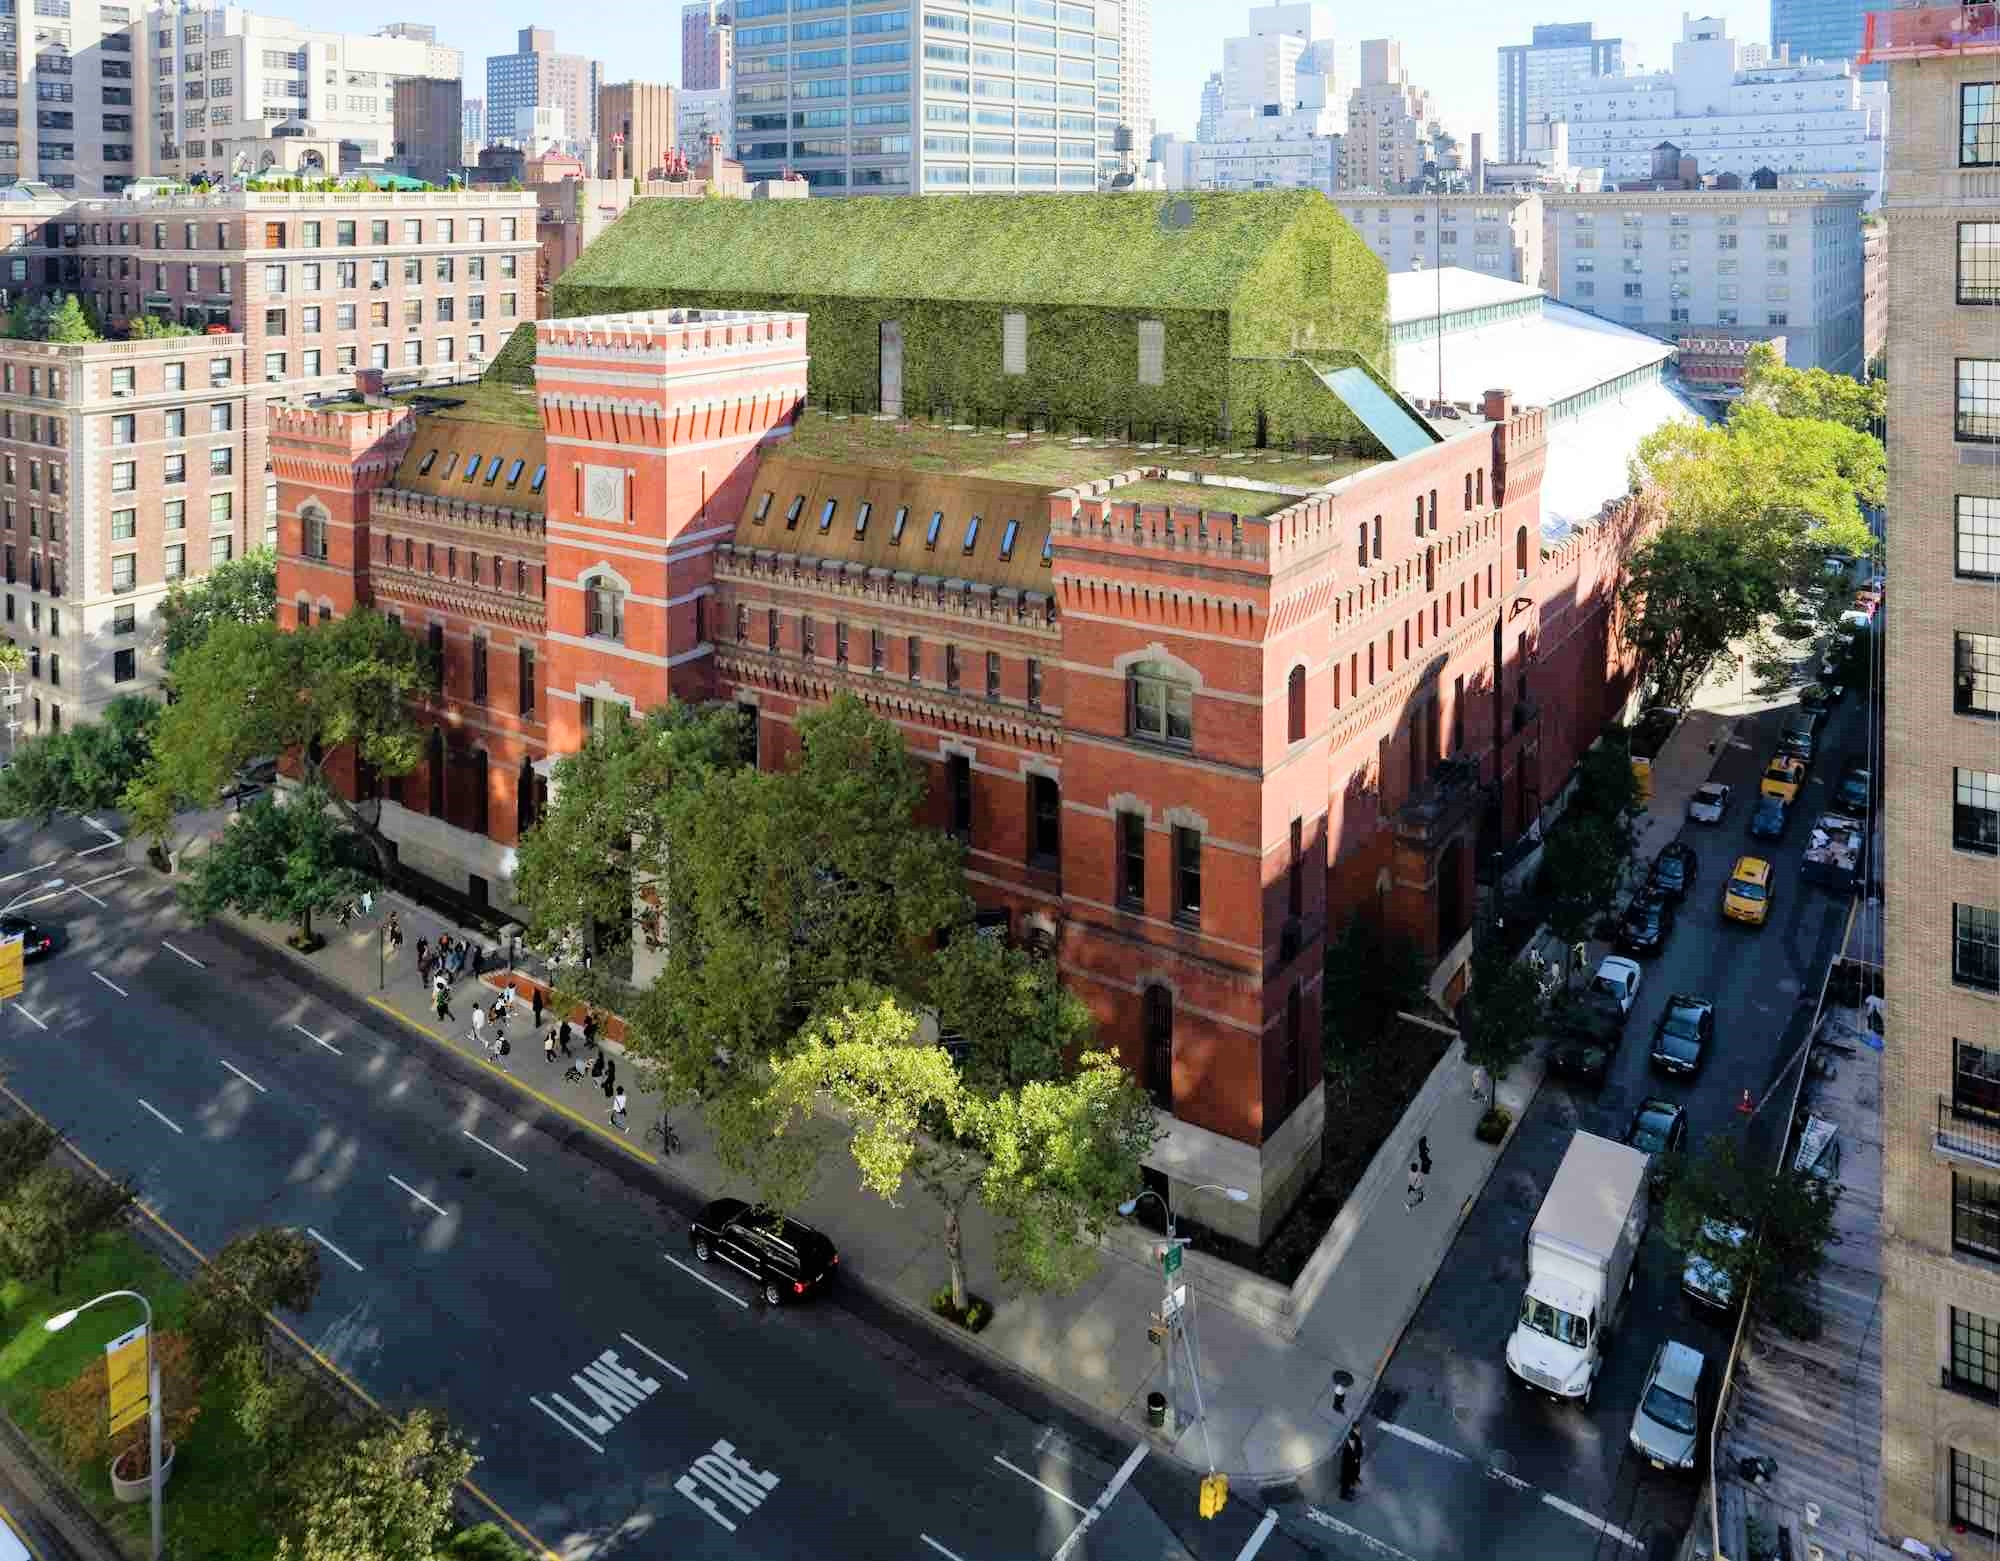 Part palace, part industrial shed, Park Avenue Armory fills a critical void in the cultural ecology of New York